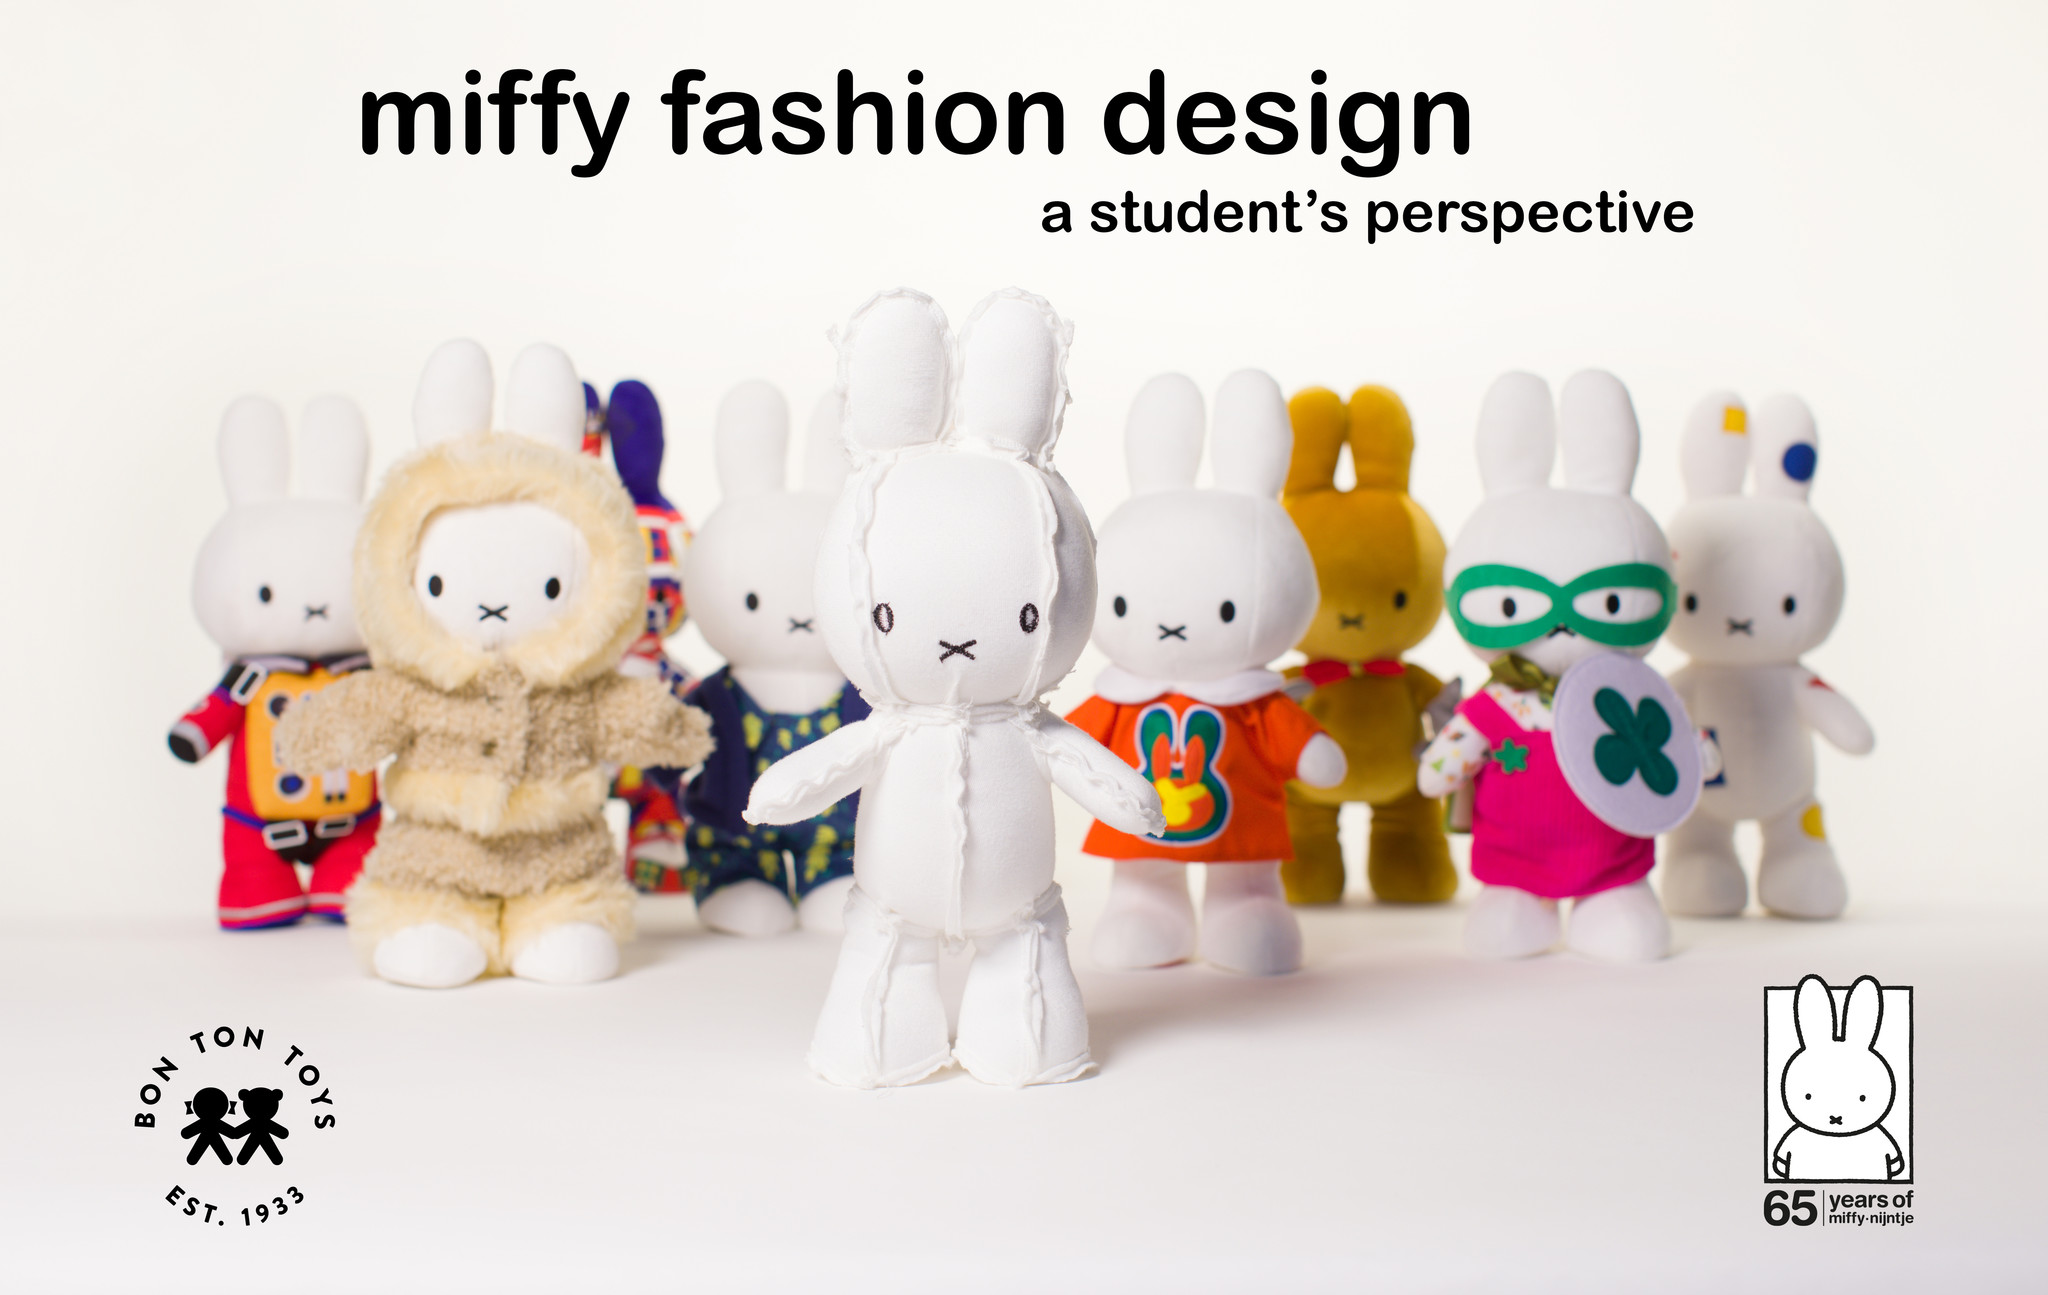 Limited edition Miffy cuddly toy 'Life Giver'